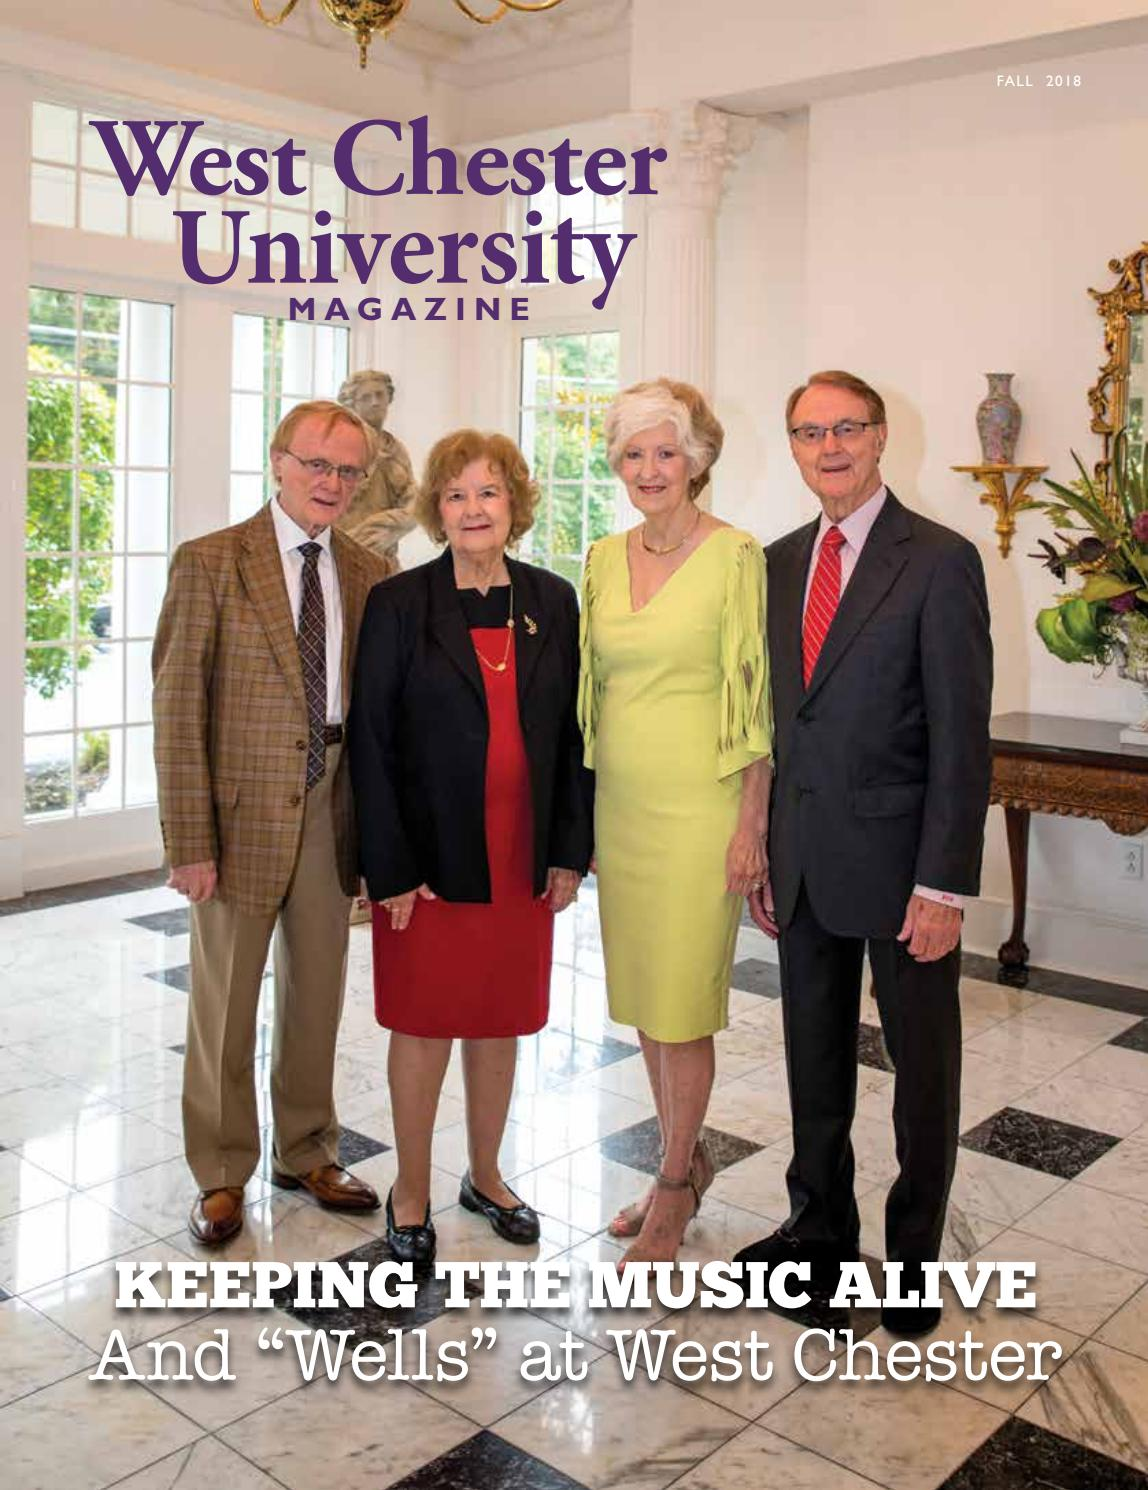 West Chester University Spring Break 2020.West Chester University Magazine Fall 2018 By West Chester